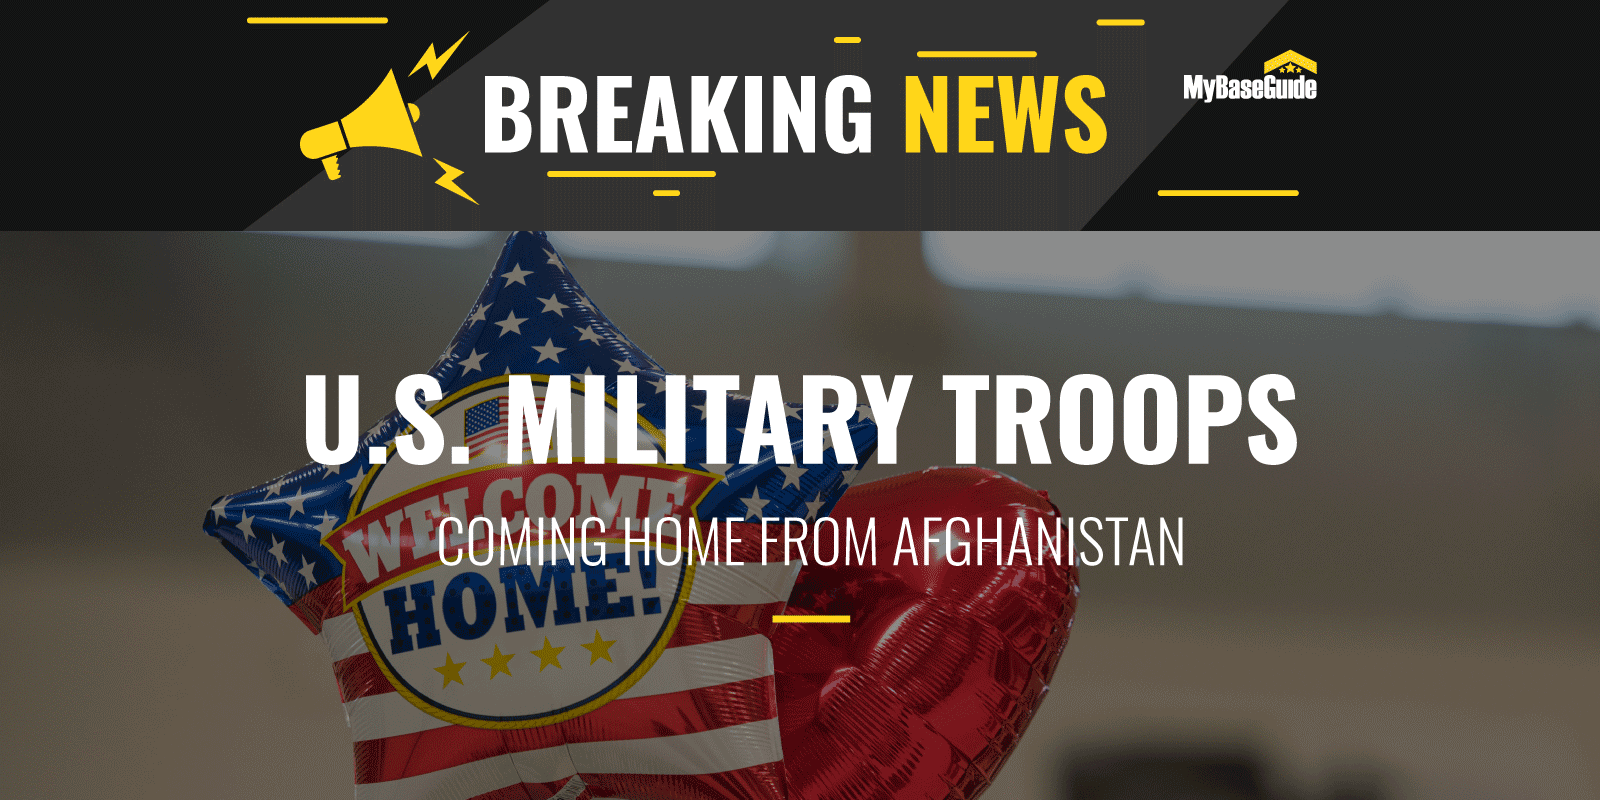 U.S. Military Troops Coming Home From Afghanistan